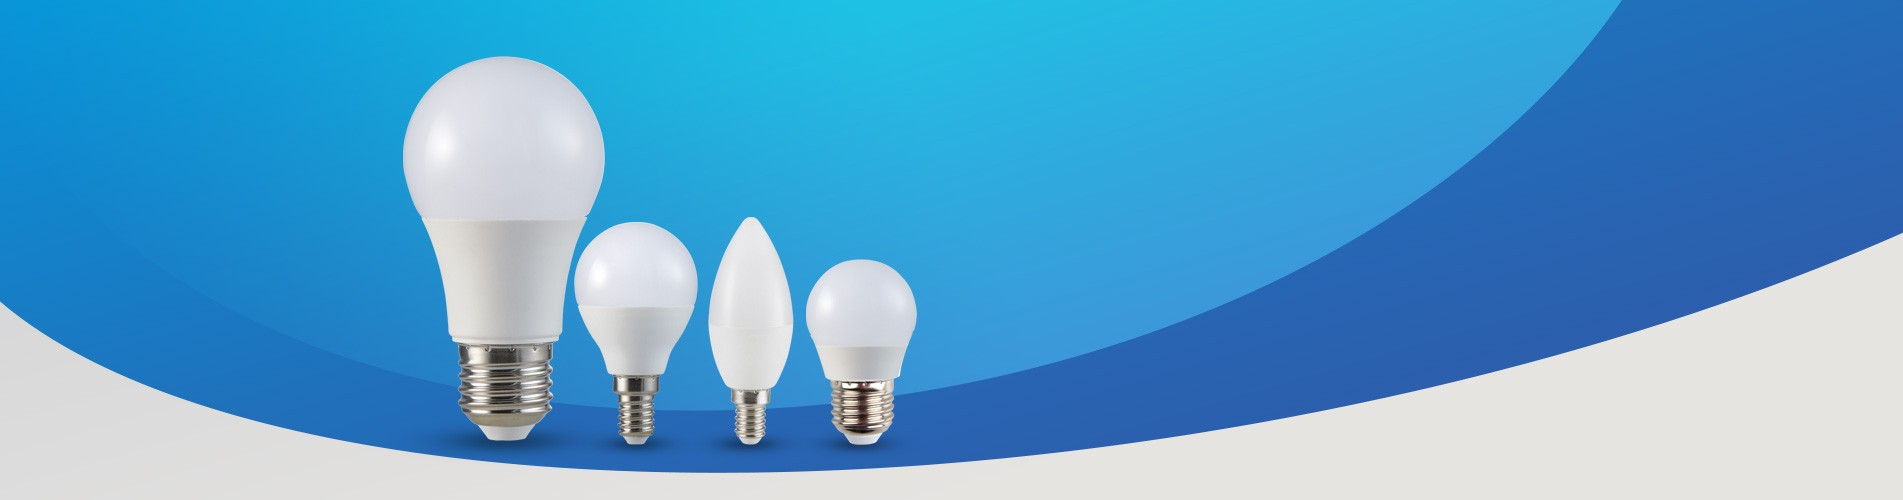 samsung bulbs